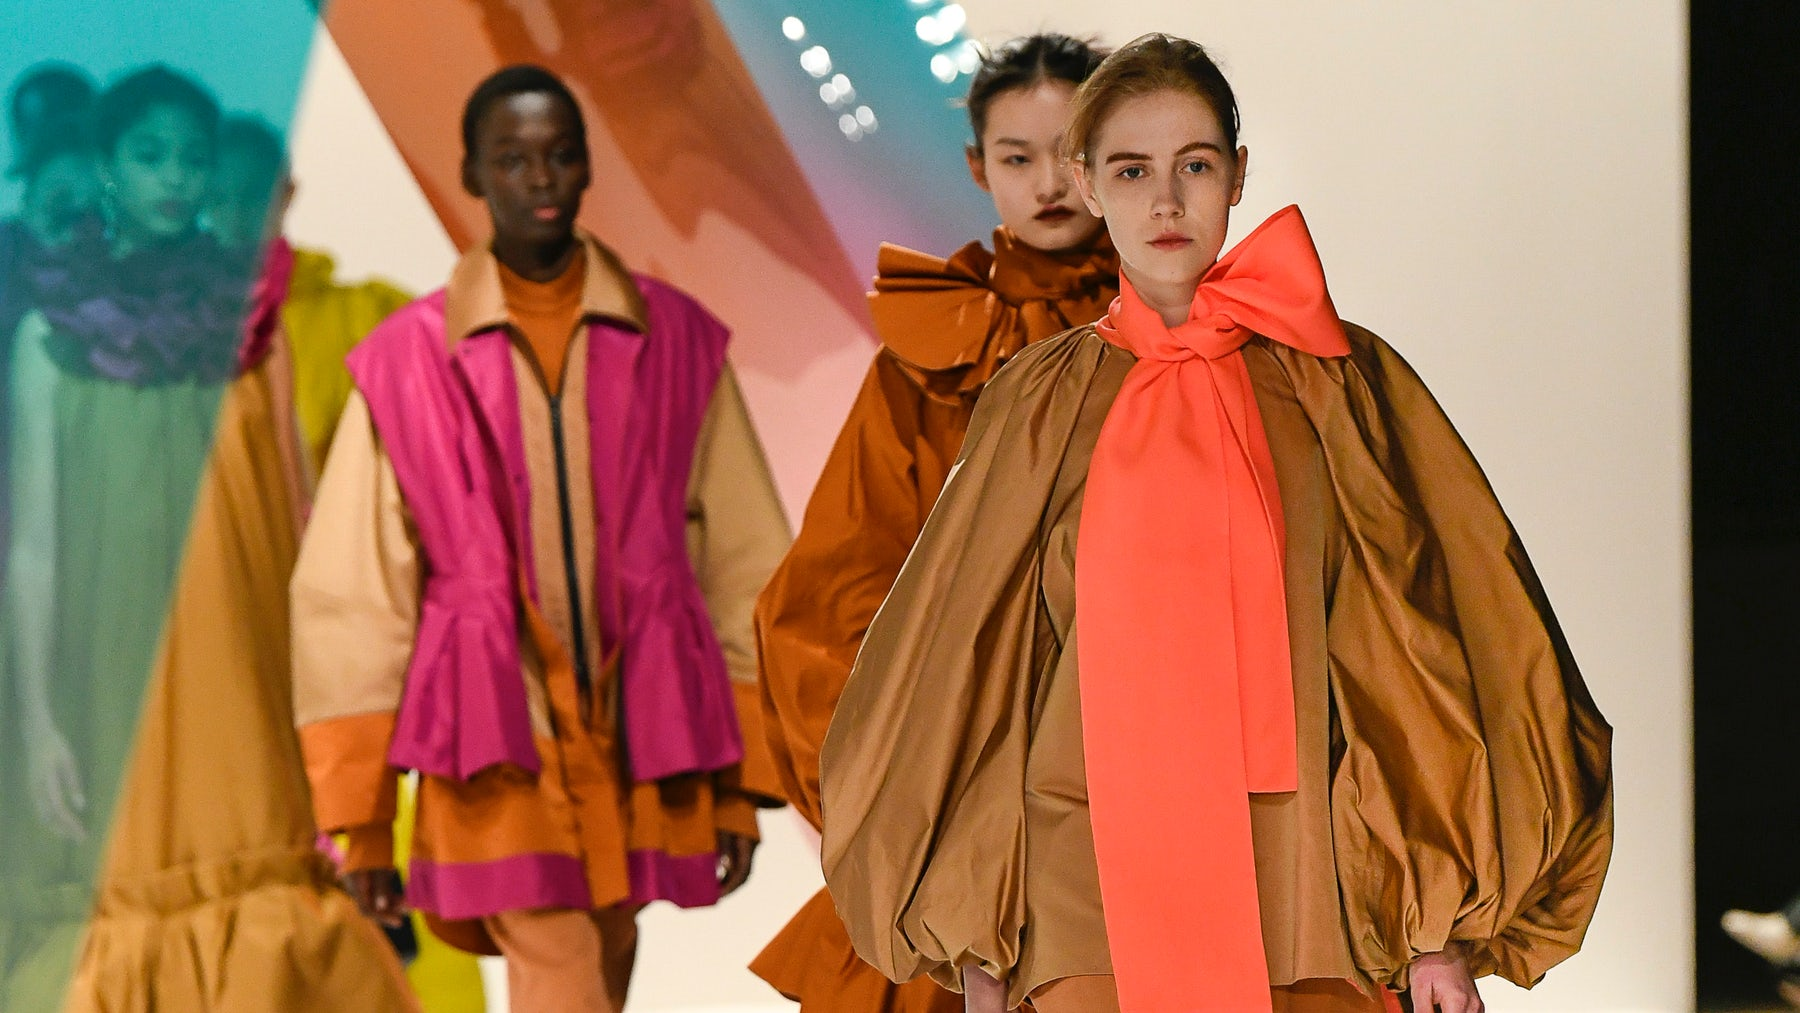 Roksanda Ilincic Autumn/Winter 2019 | Source: INDIGITAL.TV